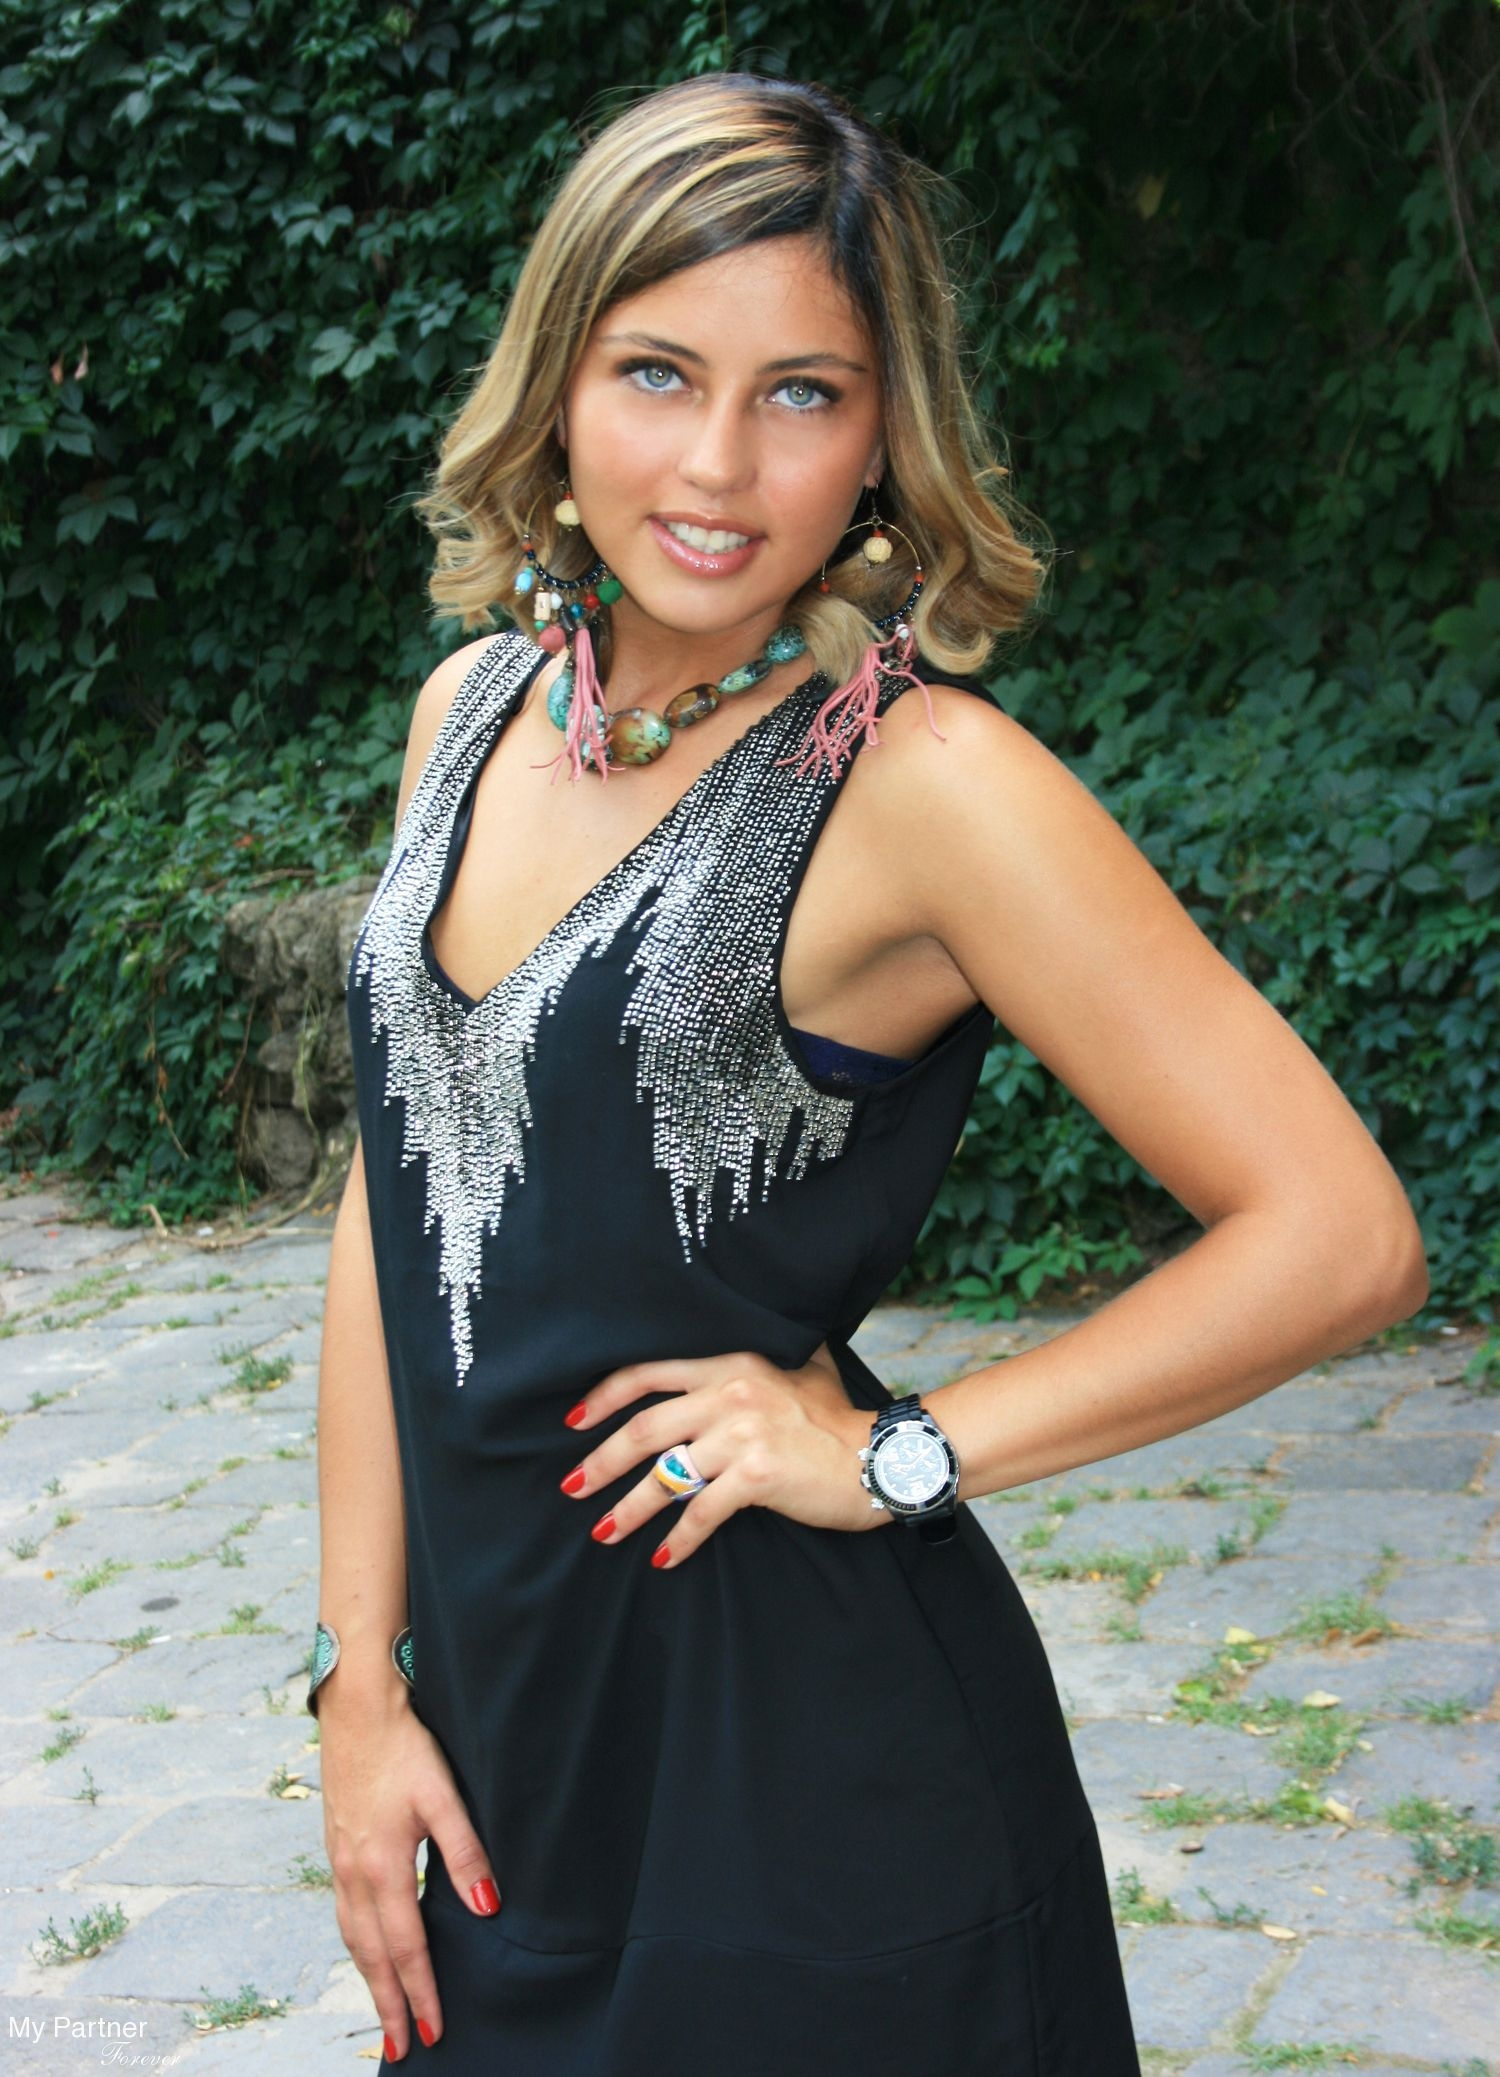 Women seeking men ukraine